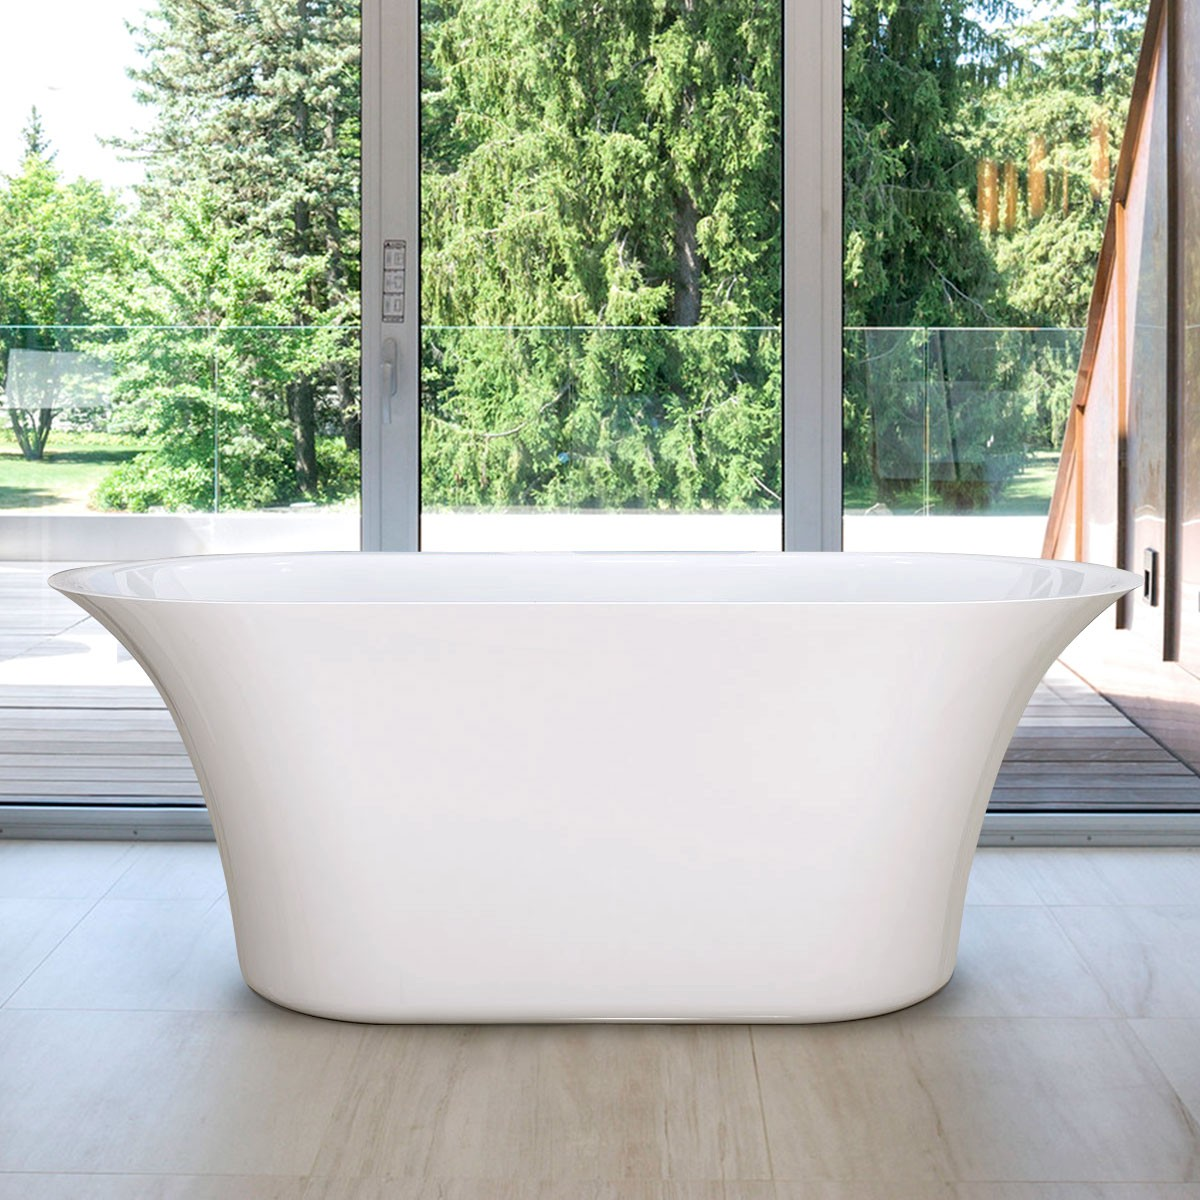 59 In Freestanding Bathtub - Acrylic Pure White (DK-PW-60572)